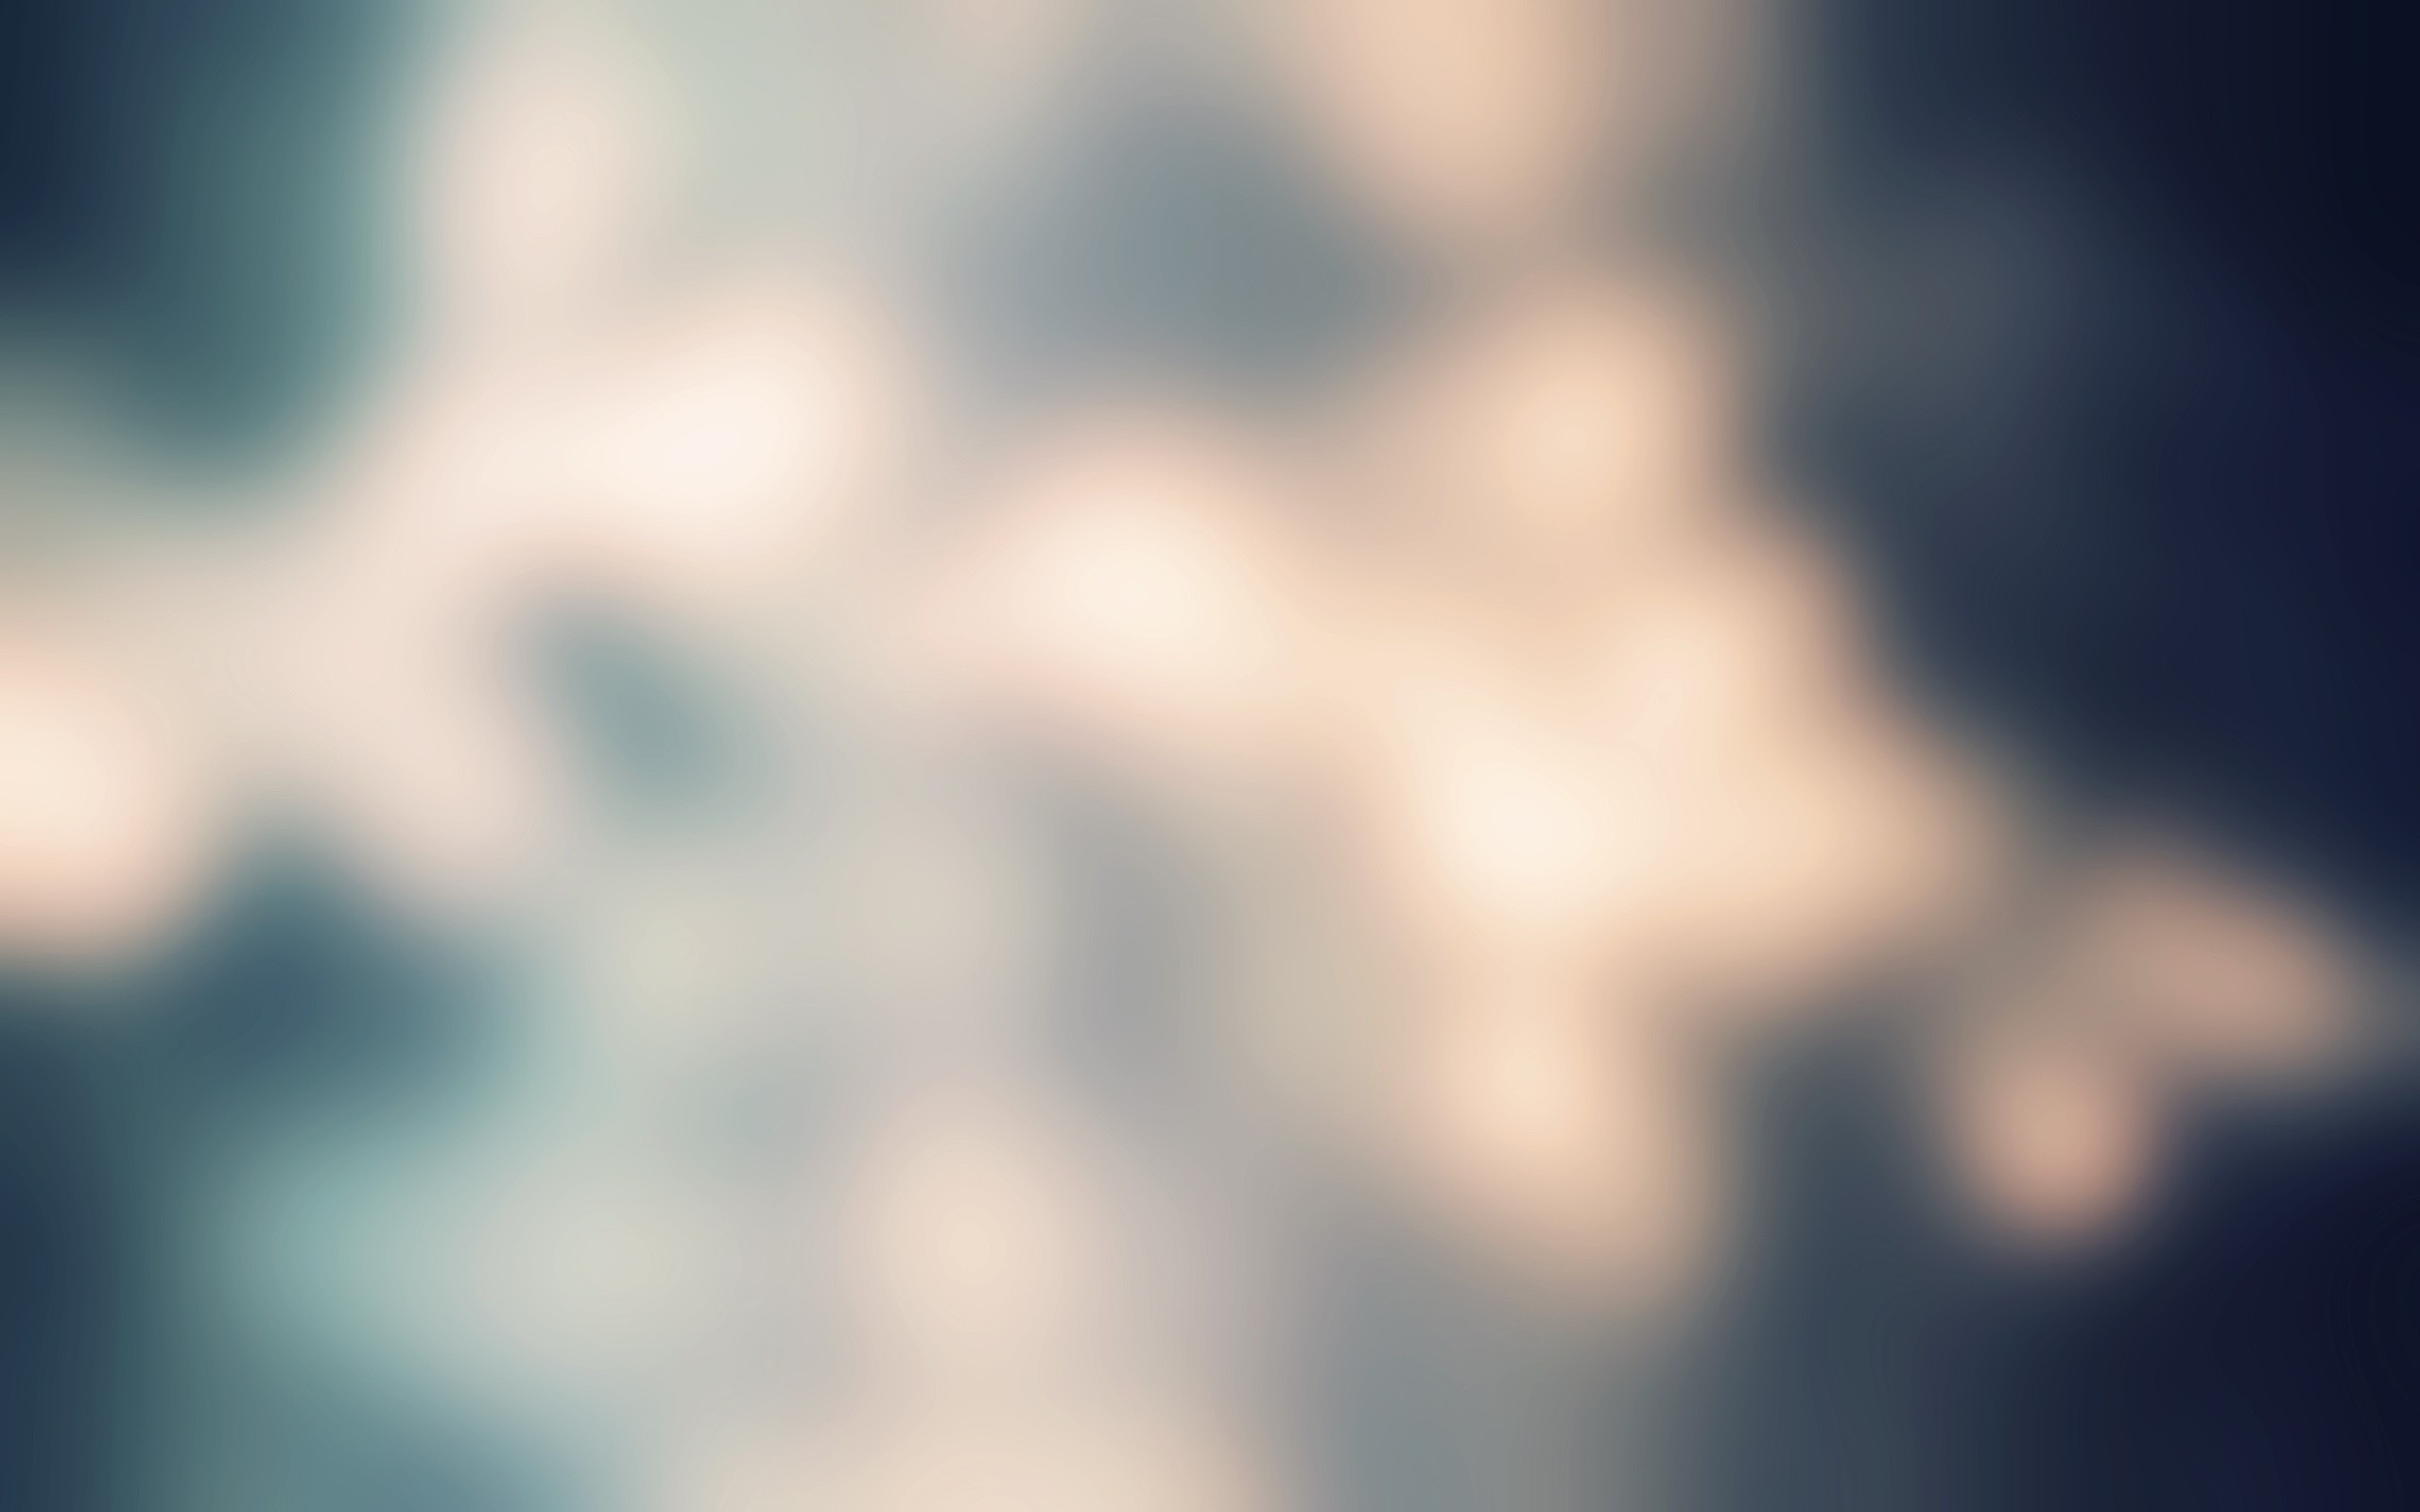 blurred abstract background wallpapers 42466 2560x1600